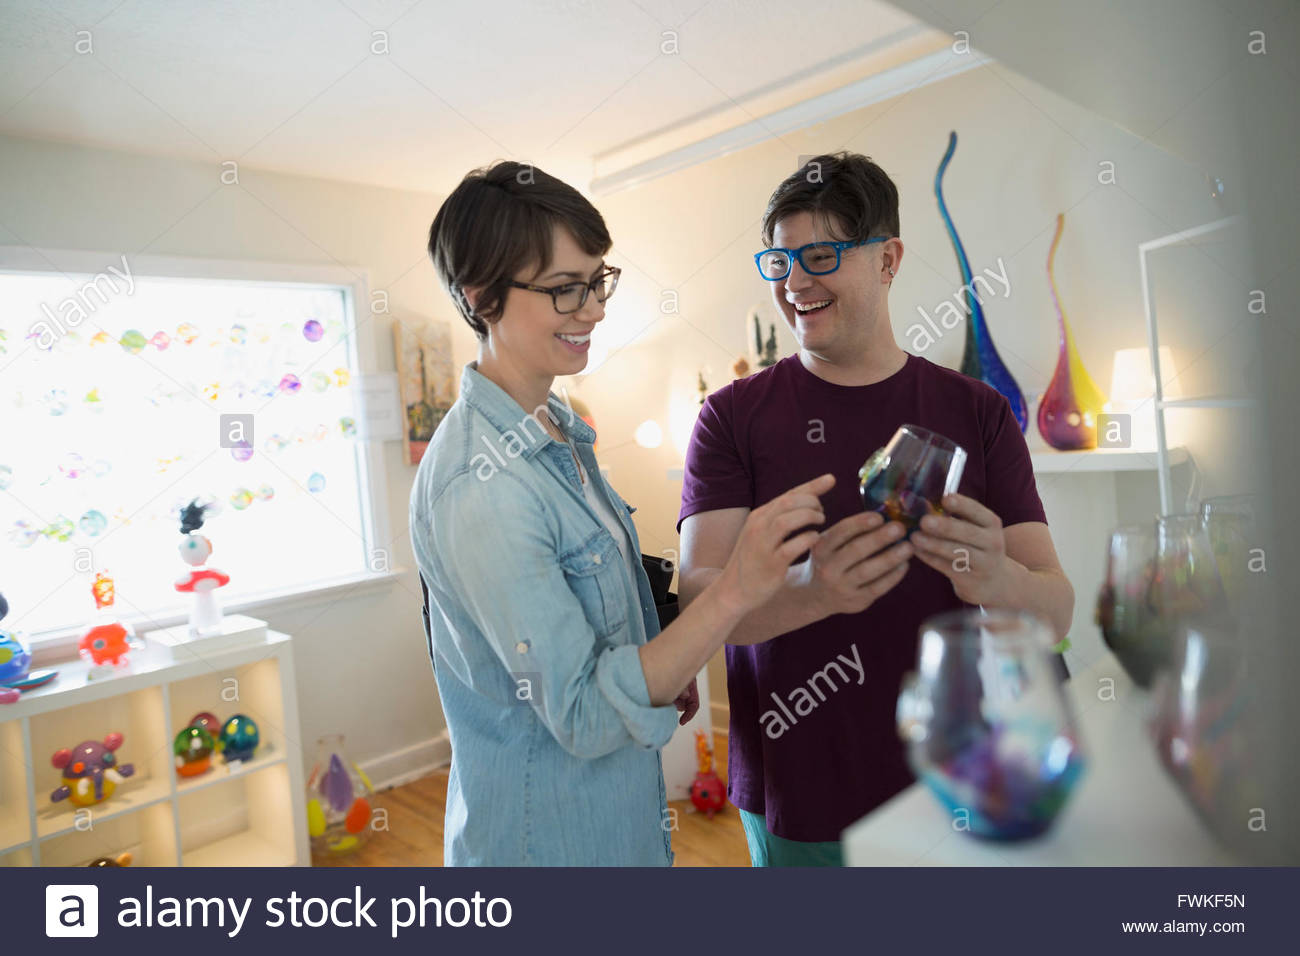 Couple browsing at retail glassblowing shop - Stock Image